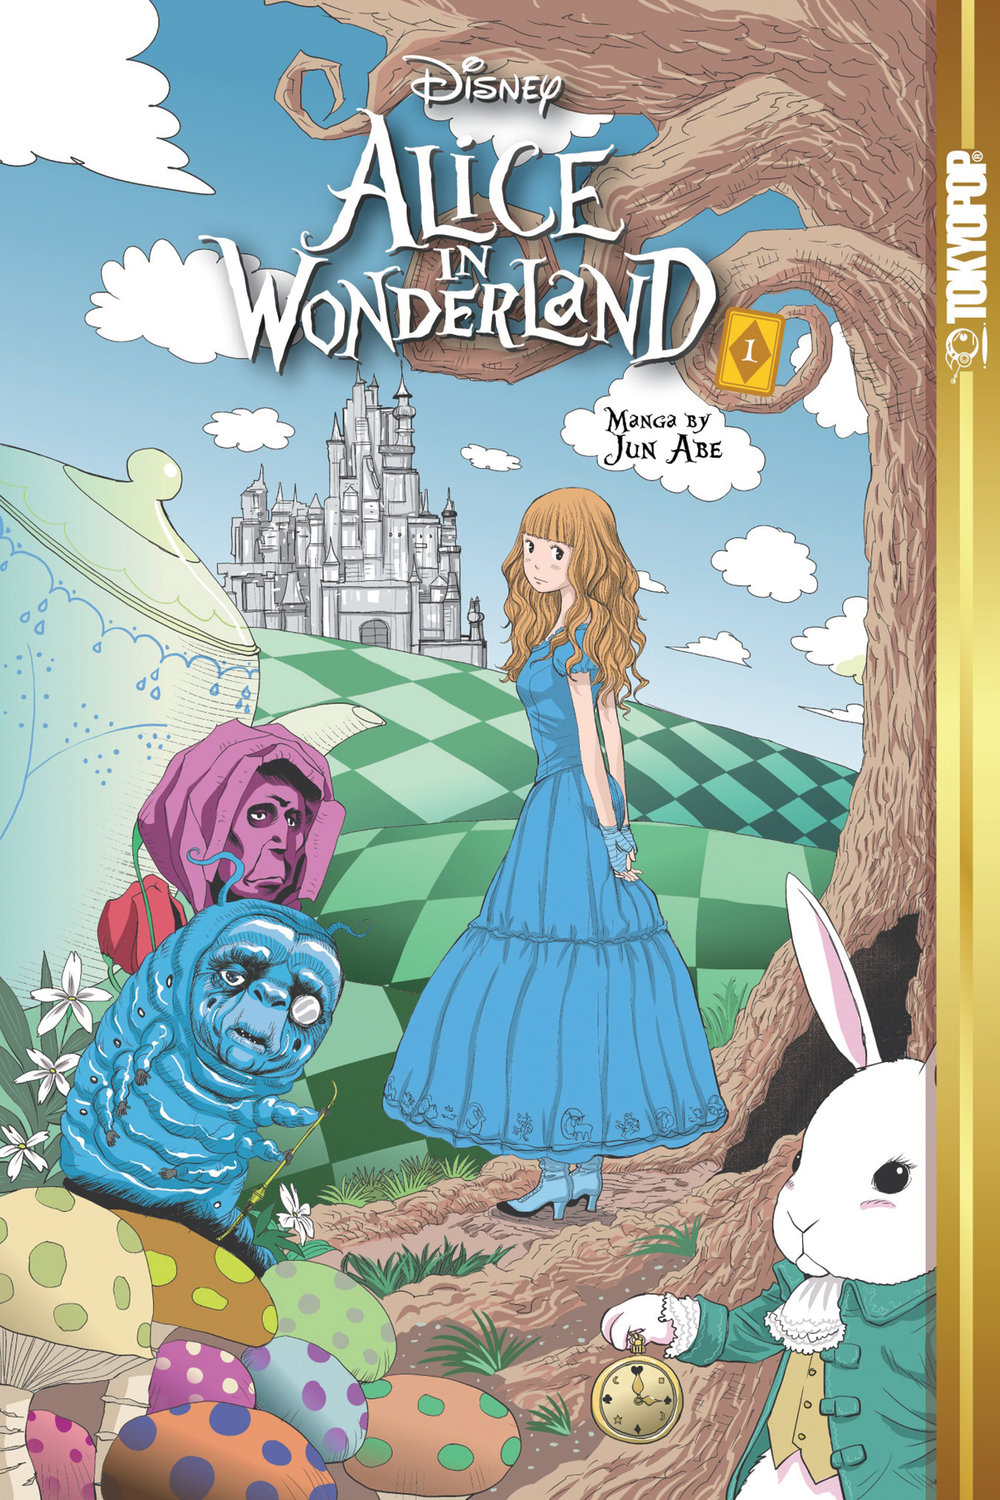 Disney Alice in Wonderland, Vol. 1 (ebook version)